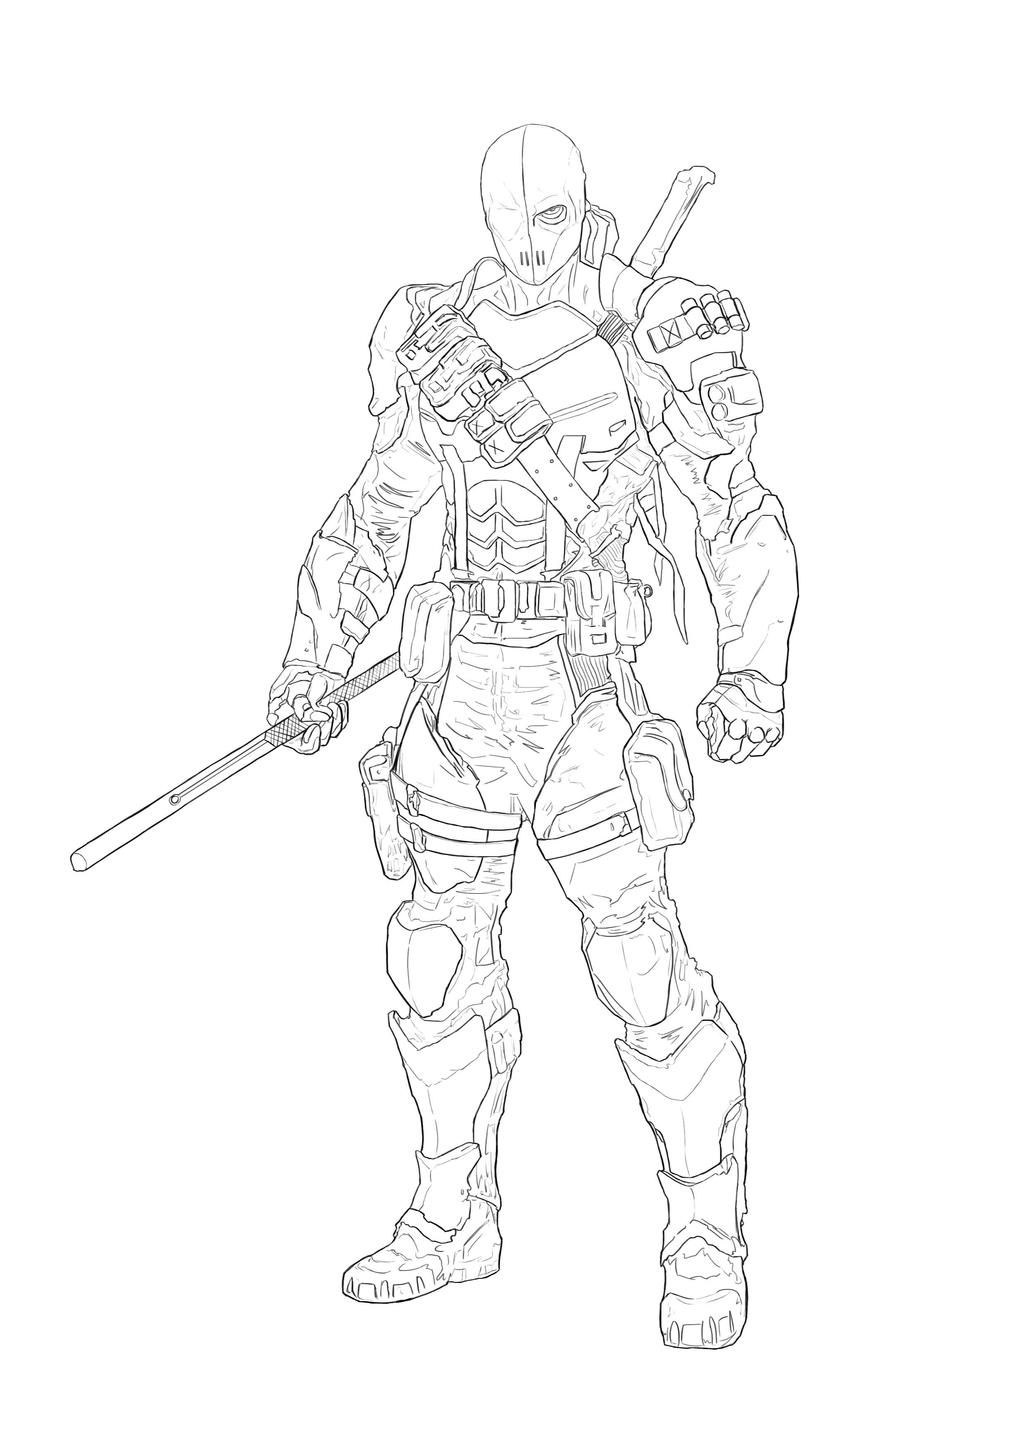 Deathstroke Outline From Reference By HellAcolyte On